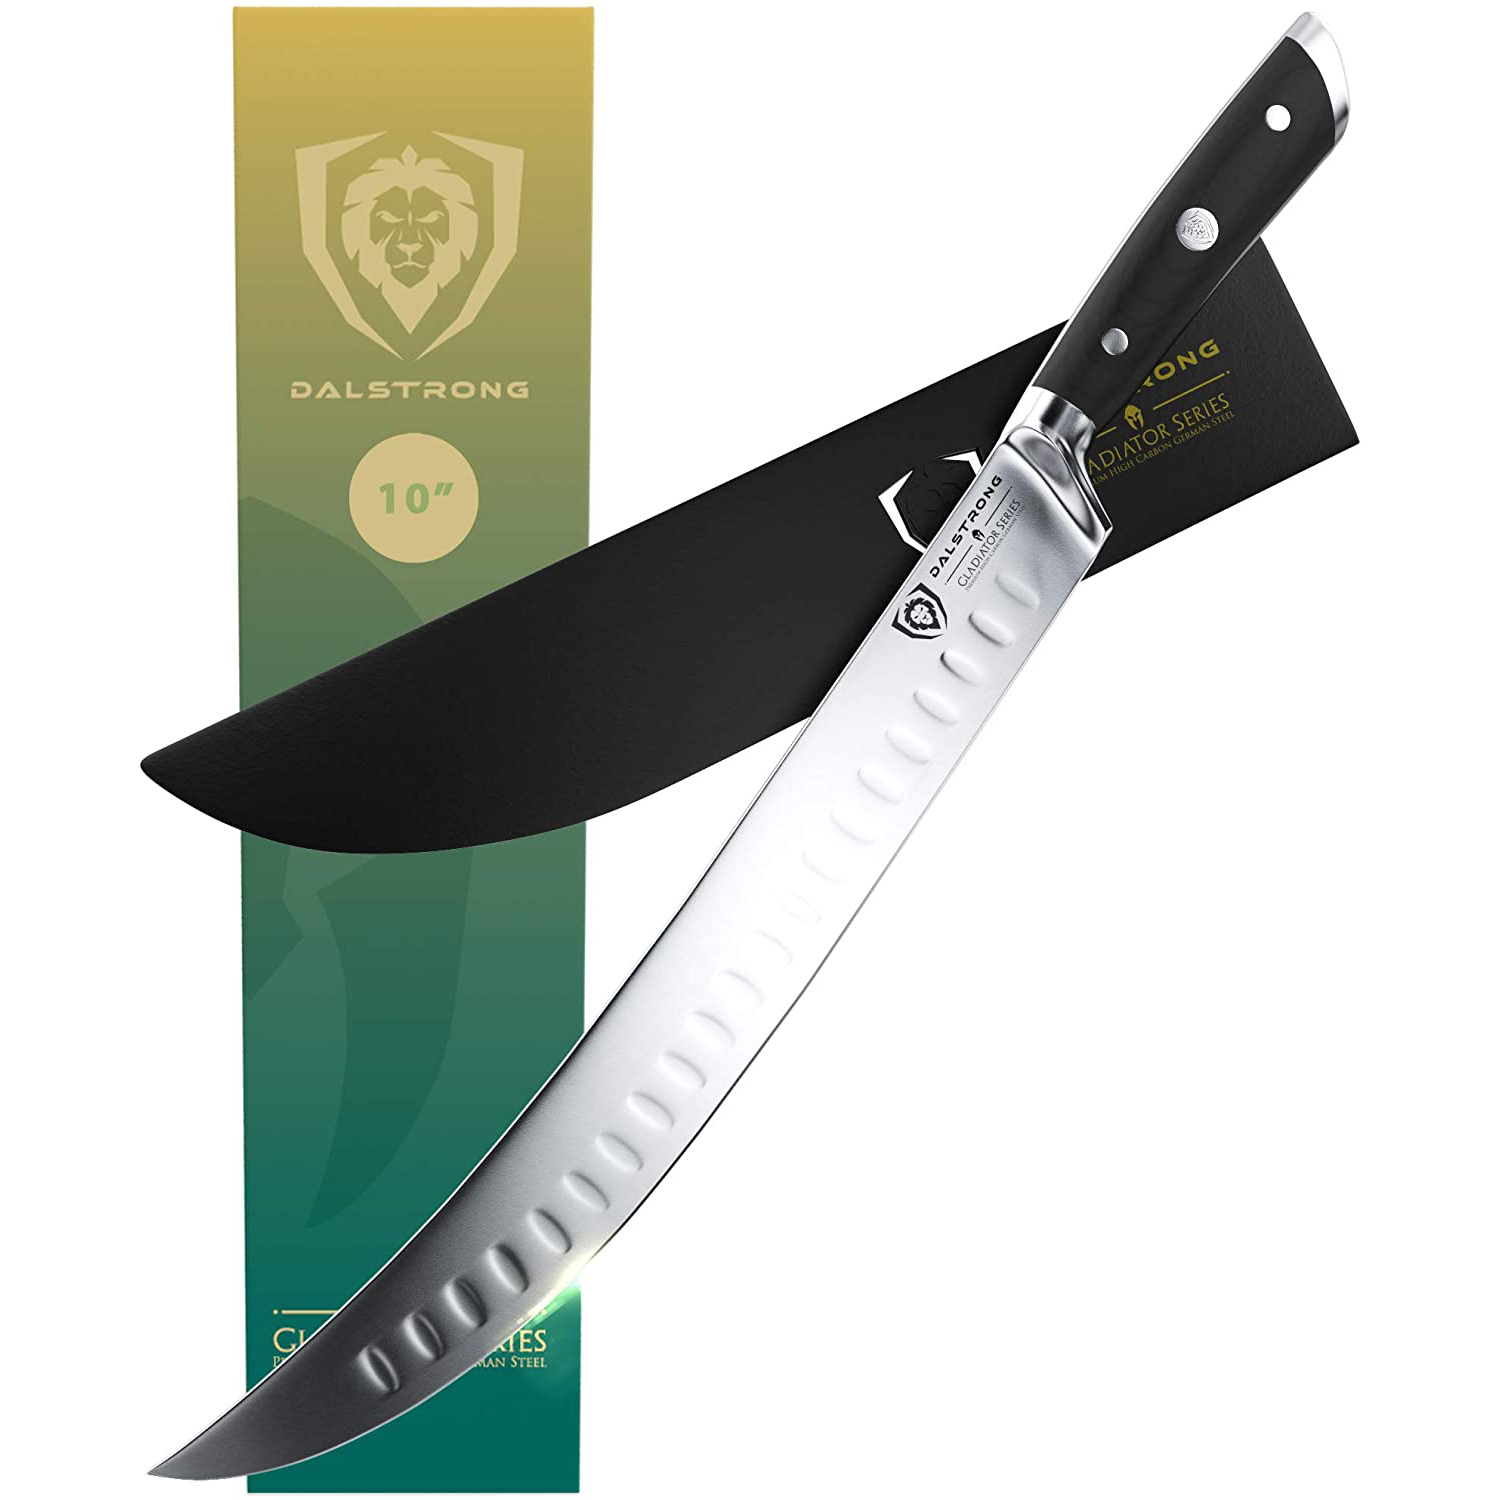 Dalstrong Butcher's Breaking Cimitar Knife